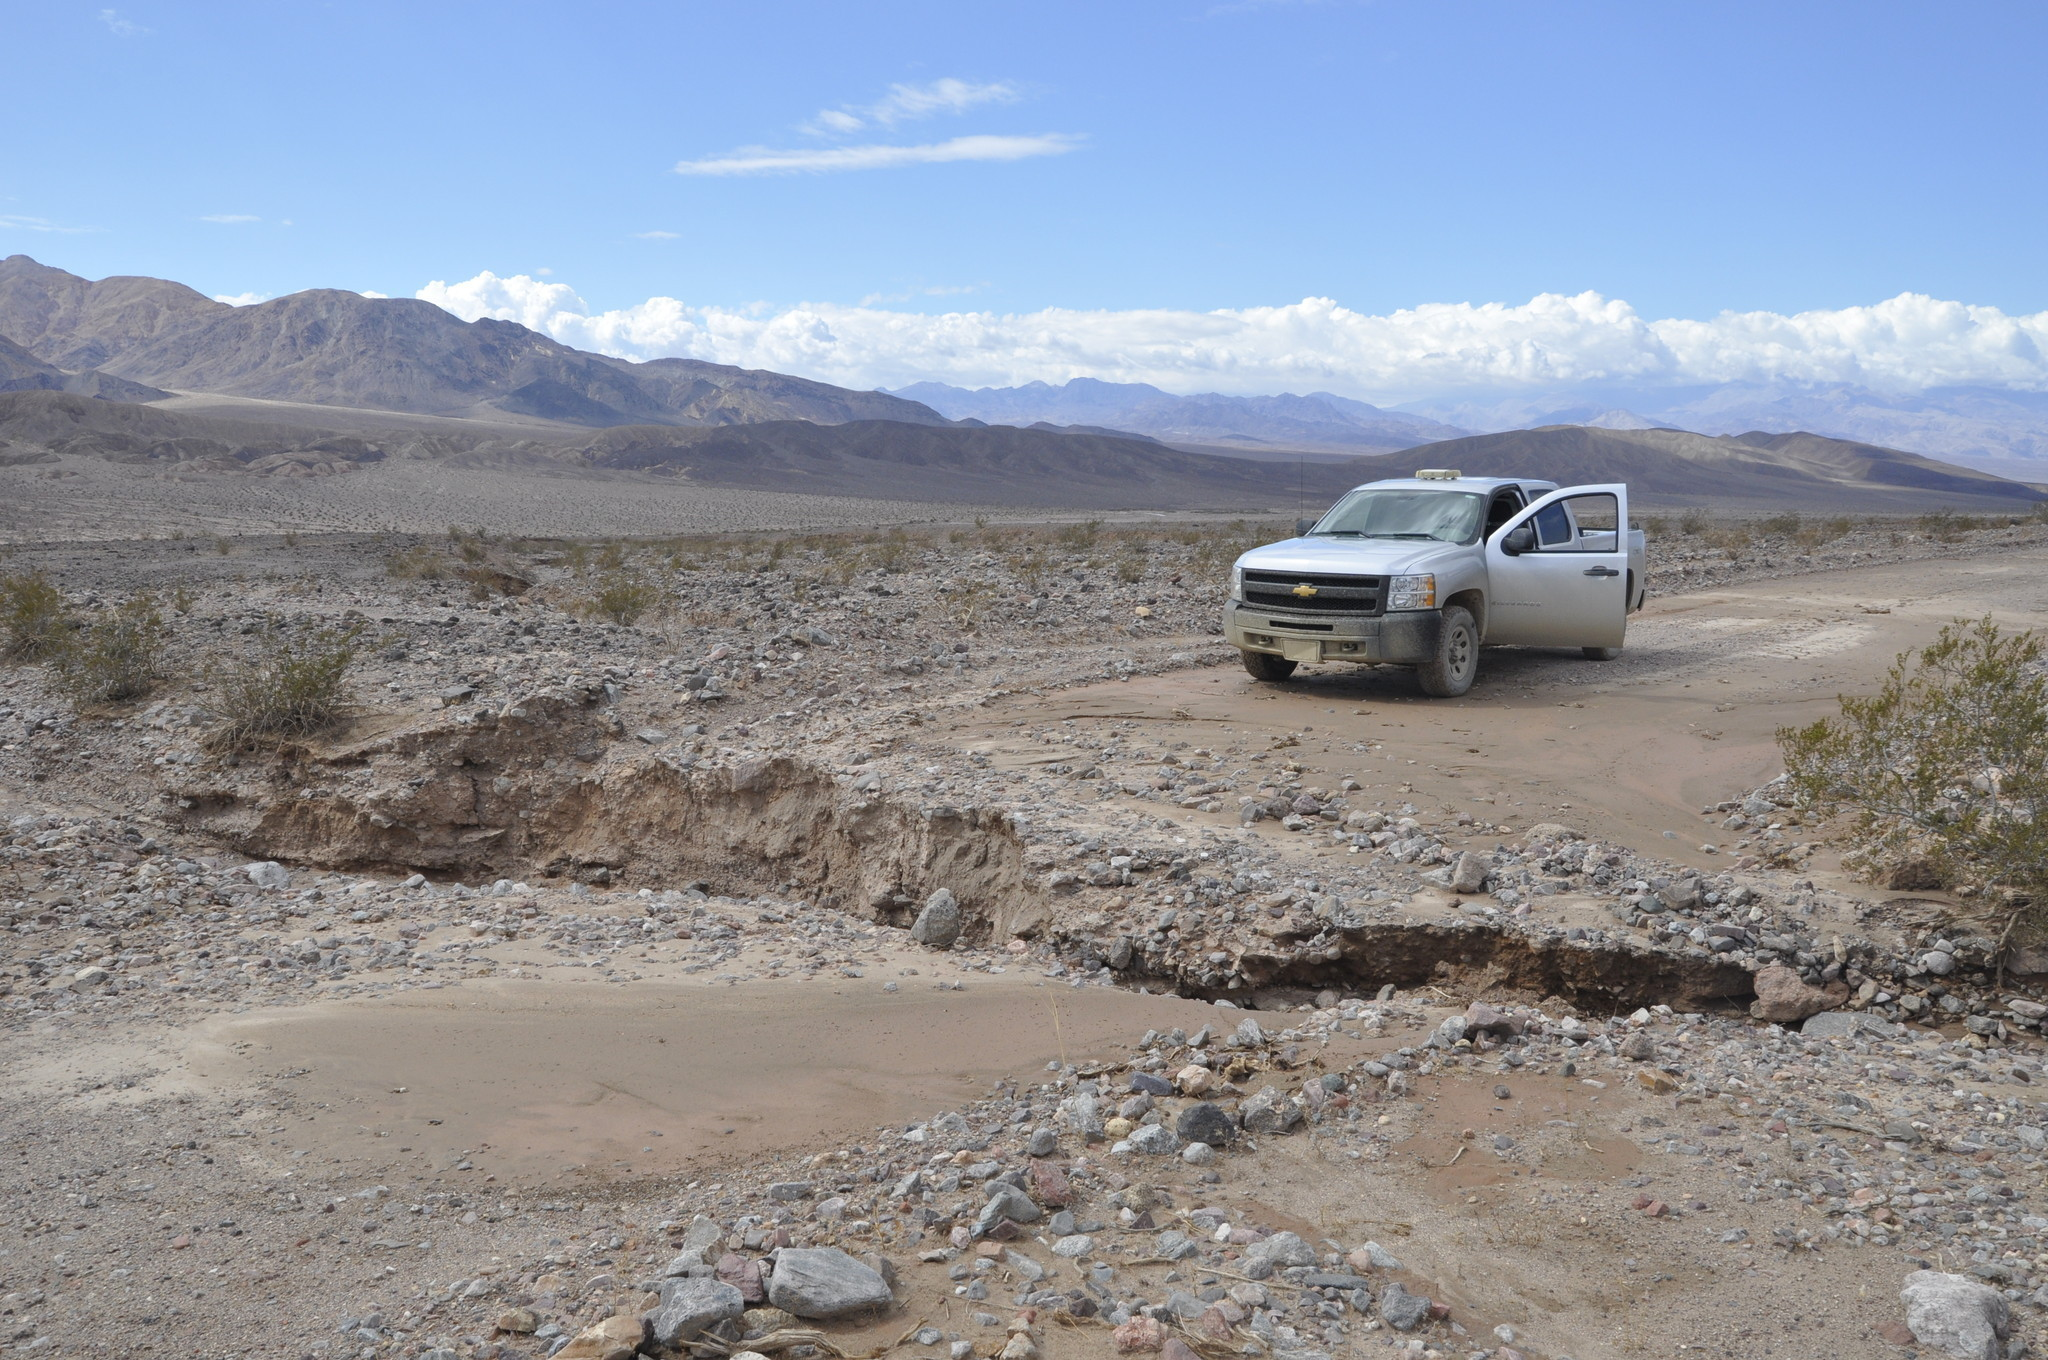 Flash floods trap visitors, rangers in Death Valley ...